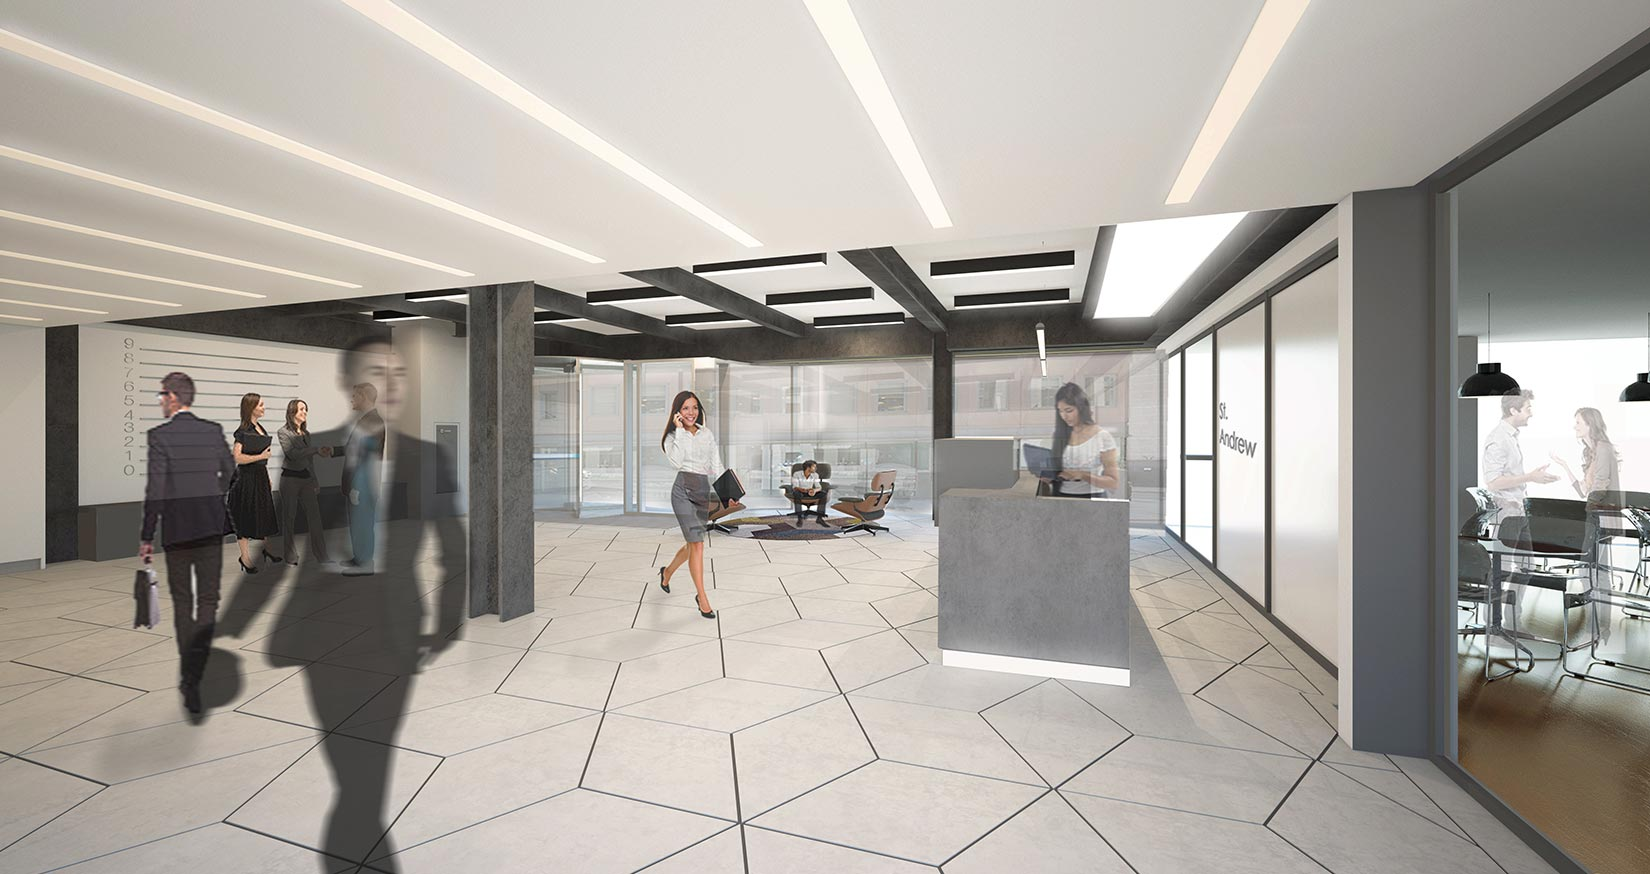 20 Saint Andrews House, Holburn, London, 3D Visual of reception